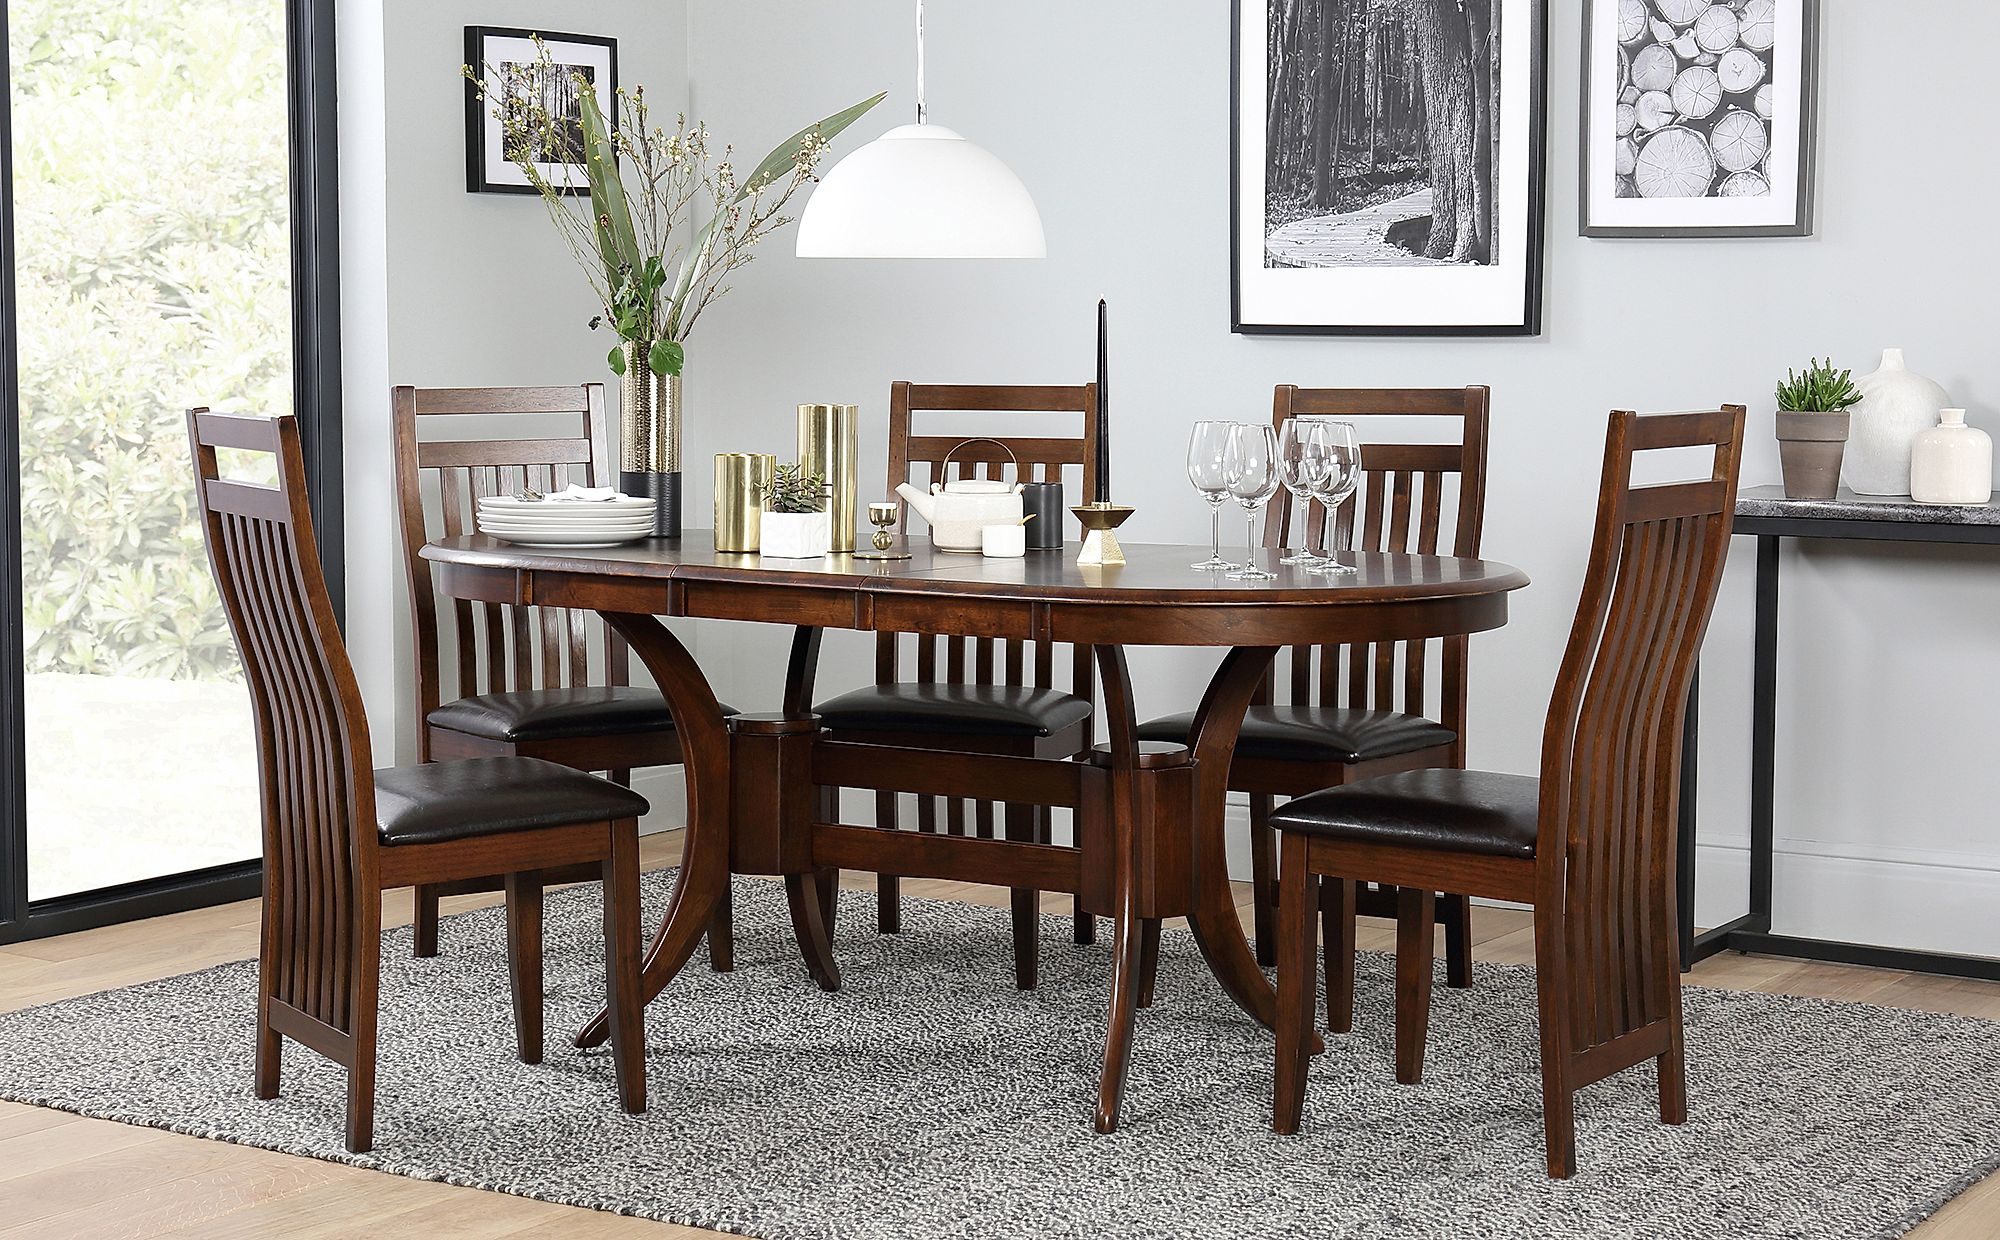 Townhouse Oval Dark Wood Extending Dining Table - with 6 Java Chairs